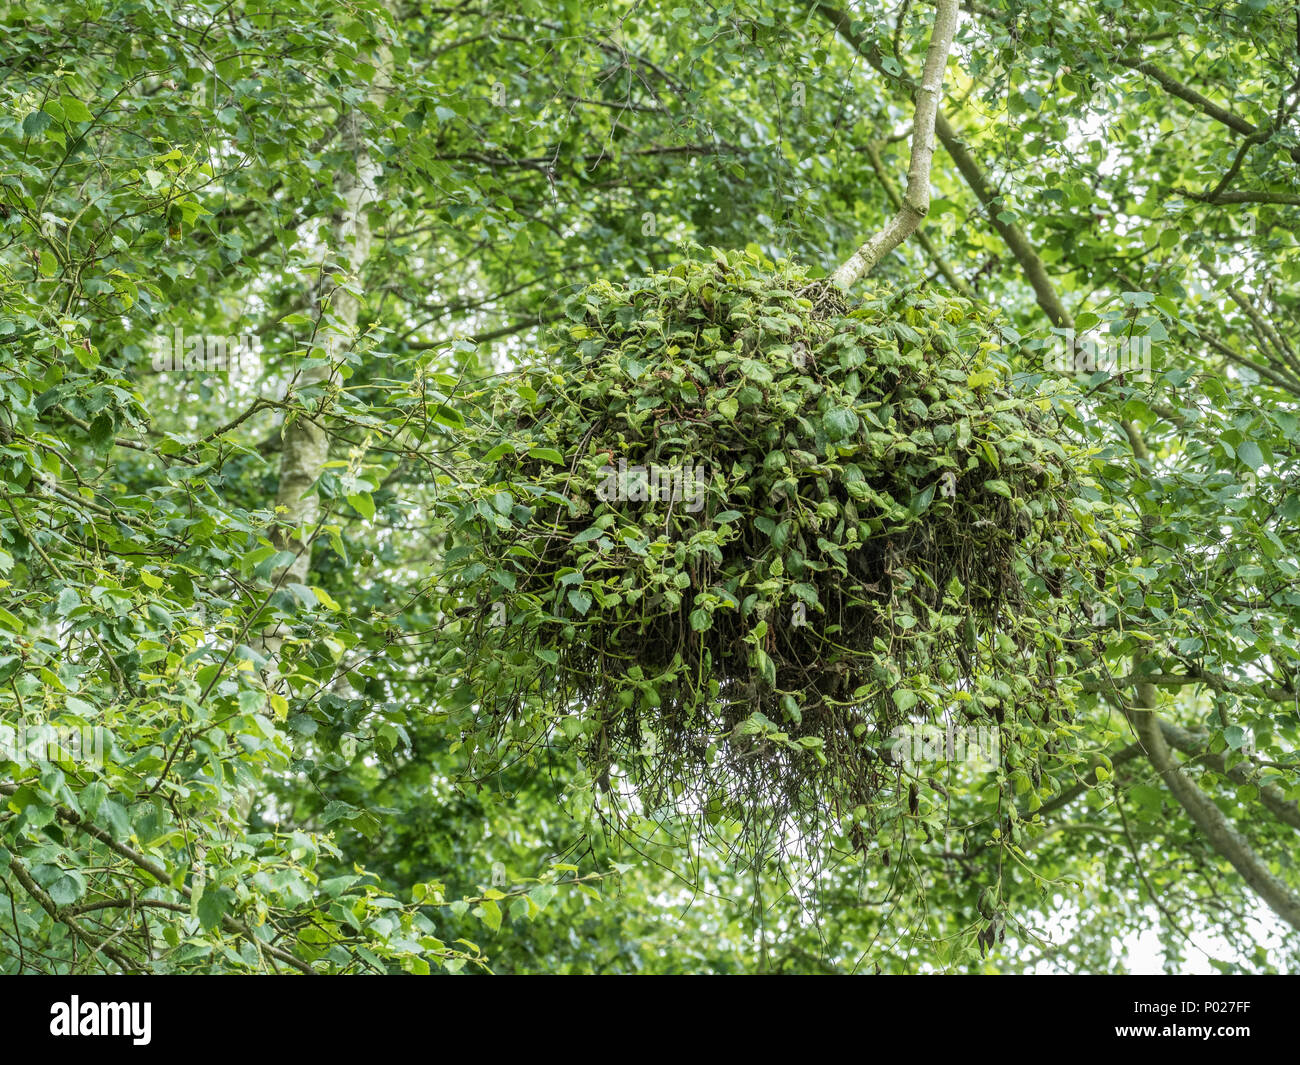 A large witches broom growing on a silver birch tree - Stock Image